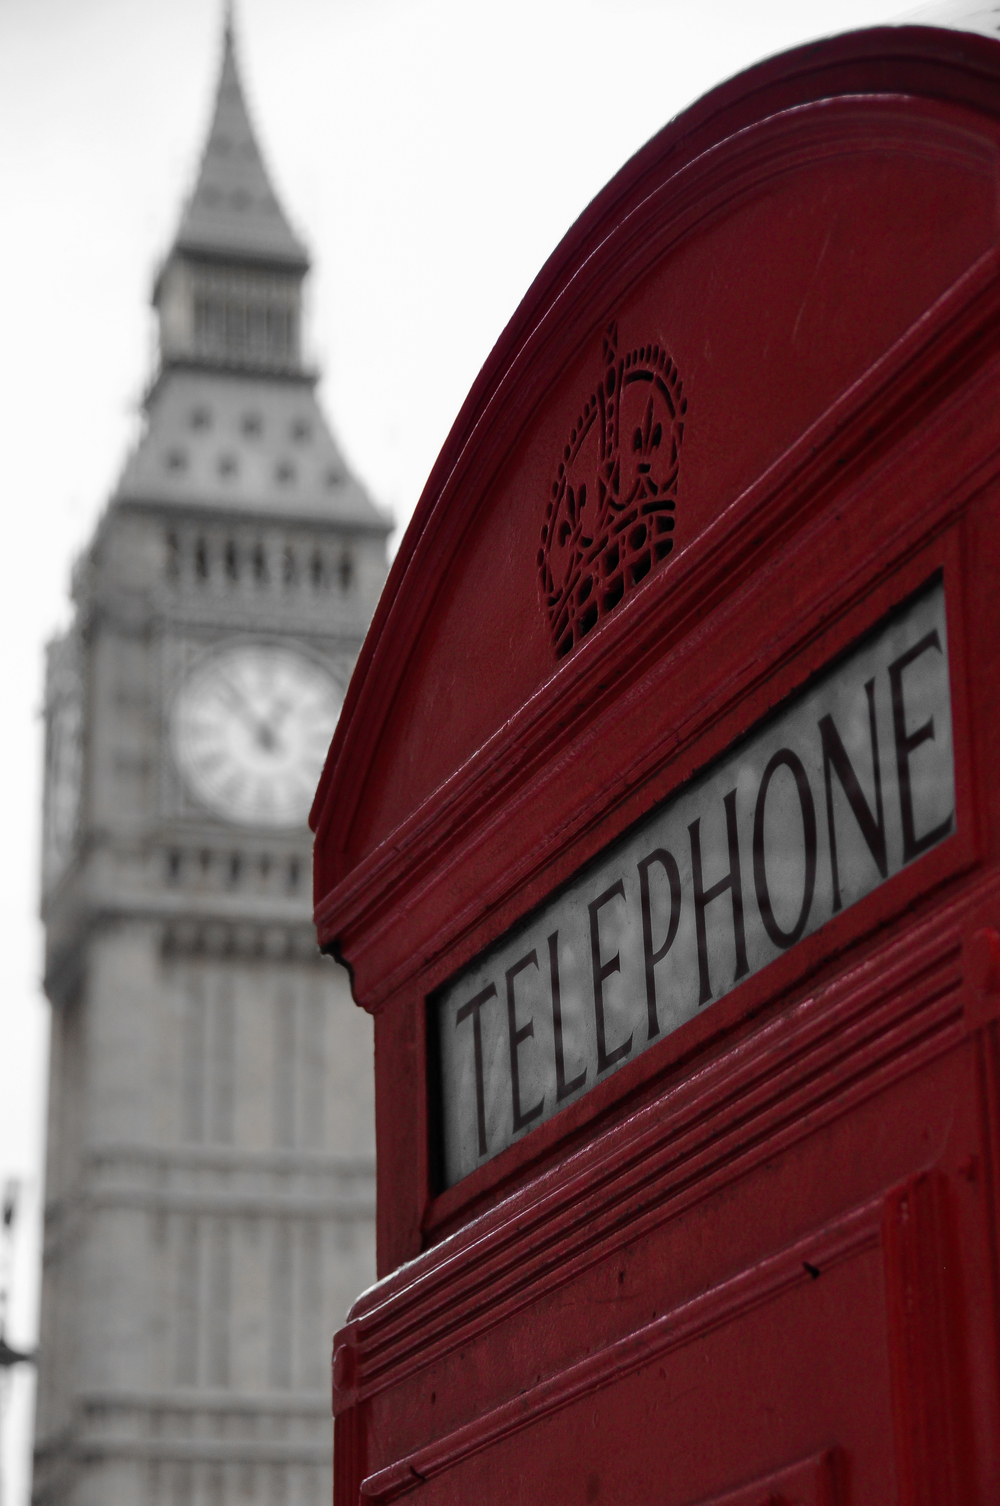 London Calling - Phone Booth/Big Ben (London, England))